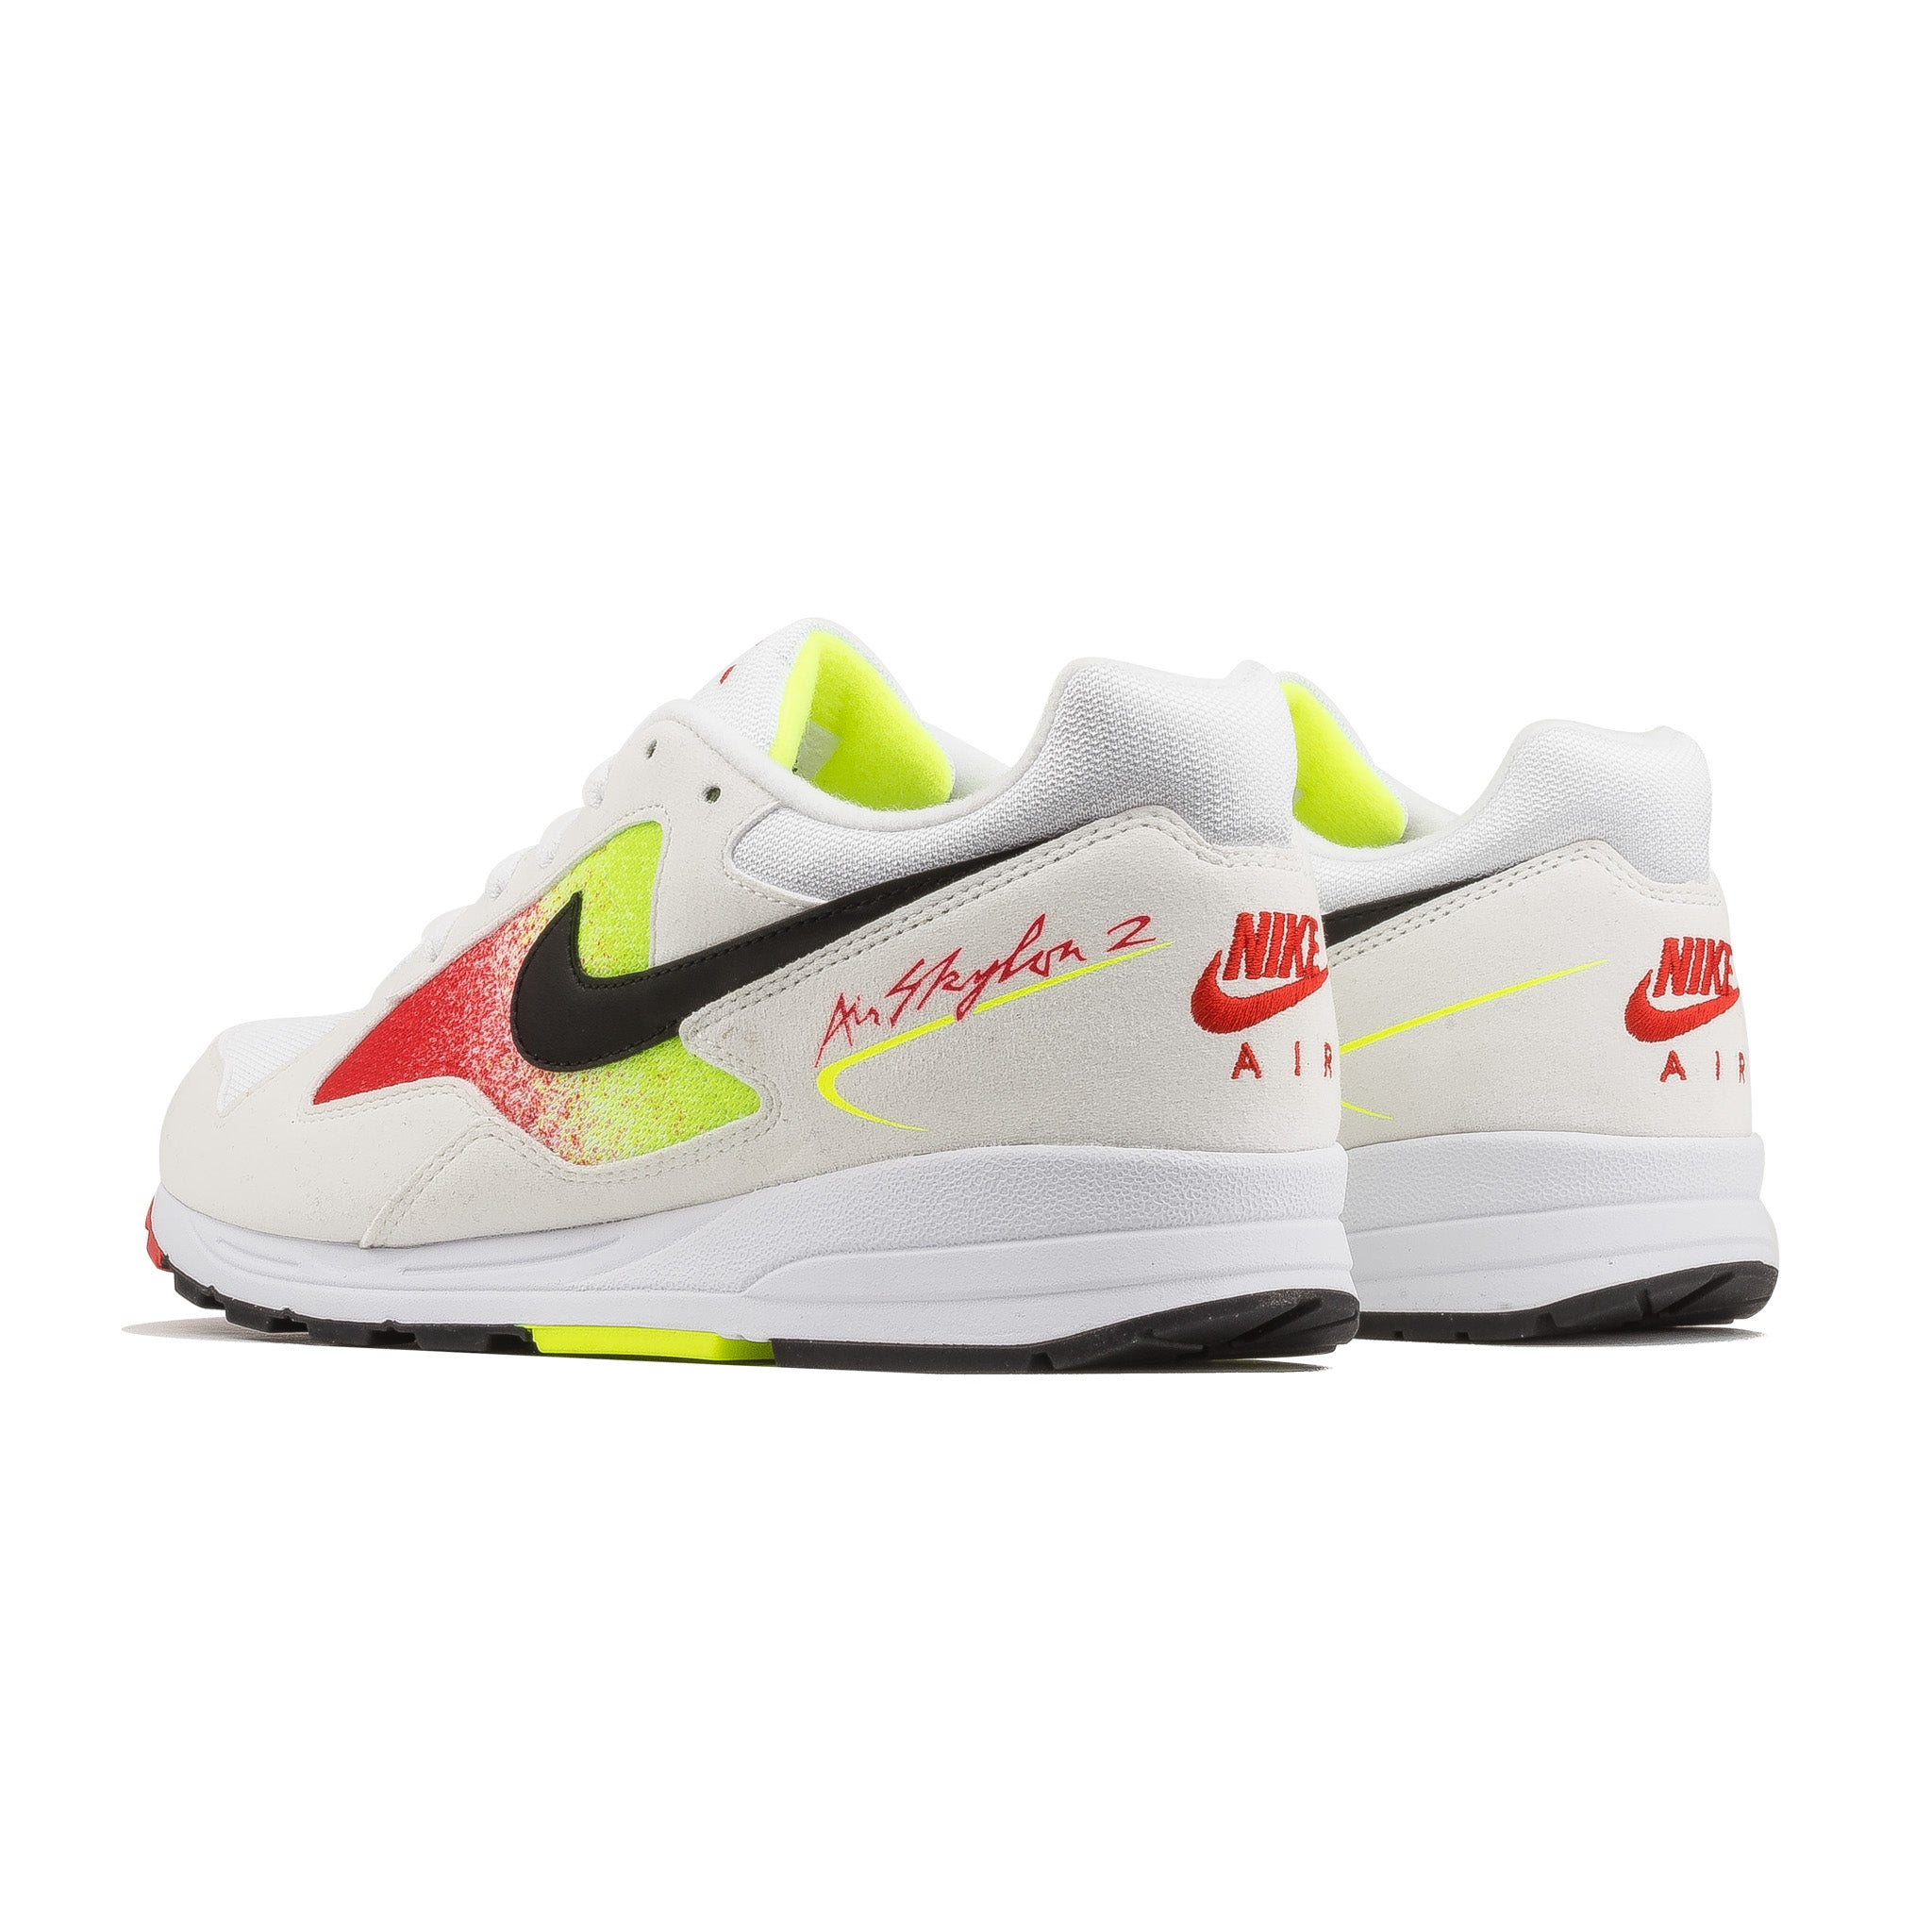 Air Skylon II AO1551-105 White